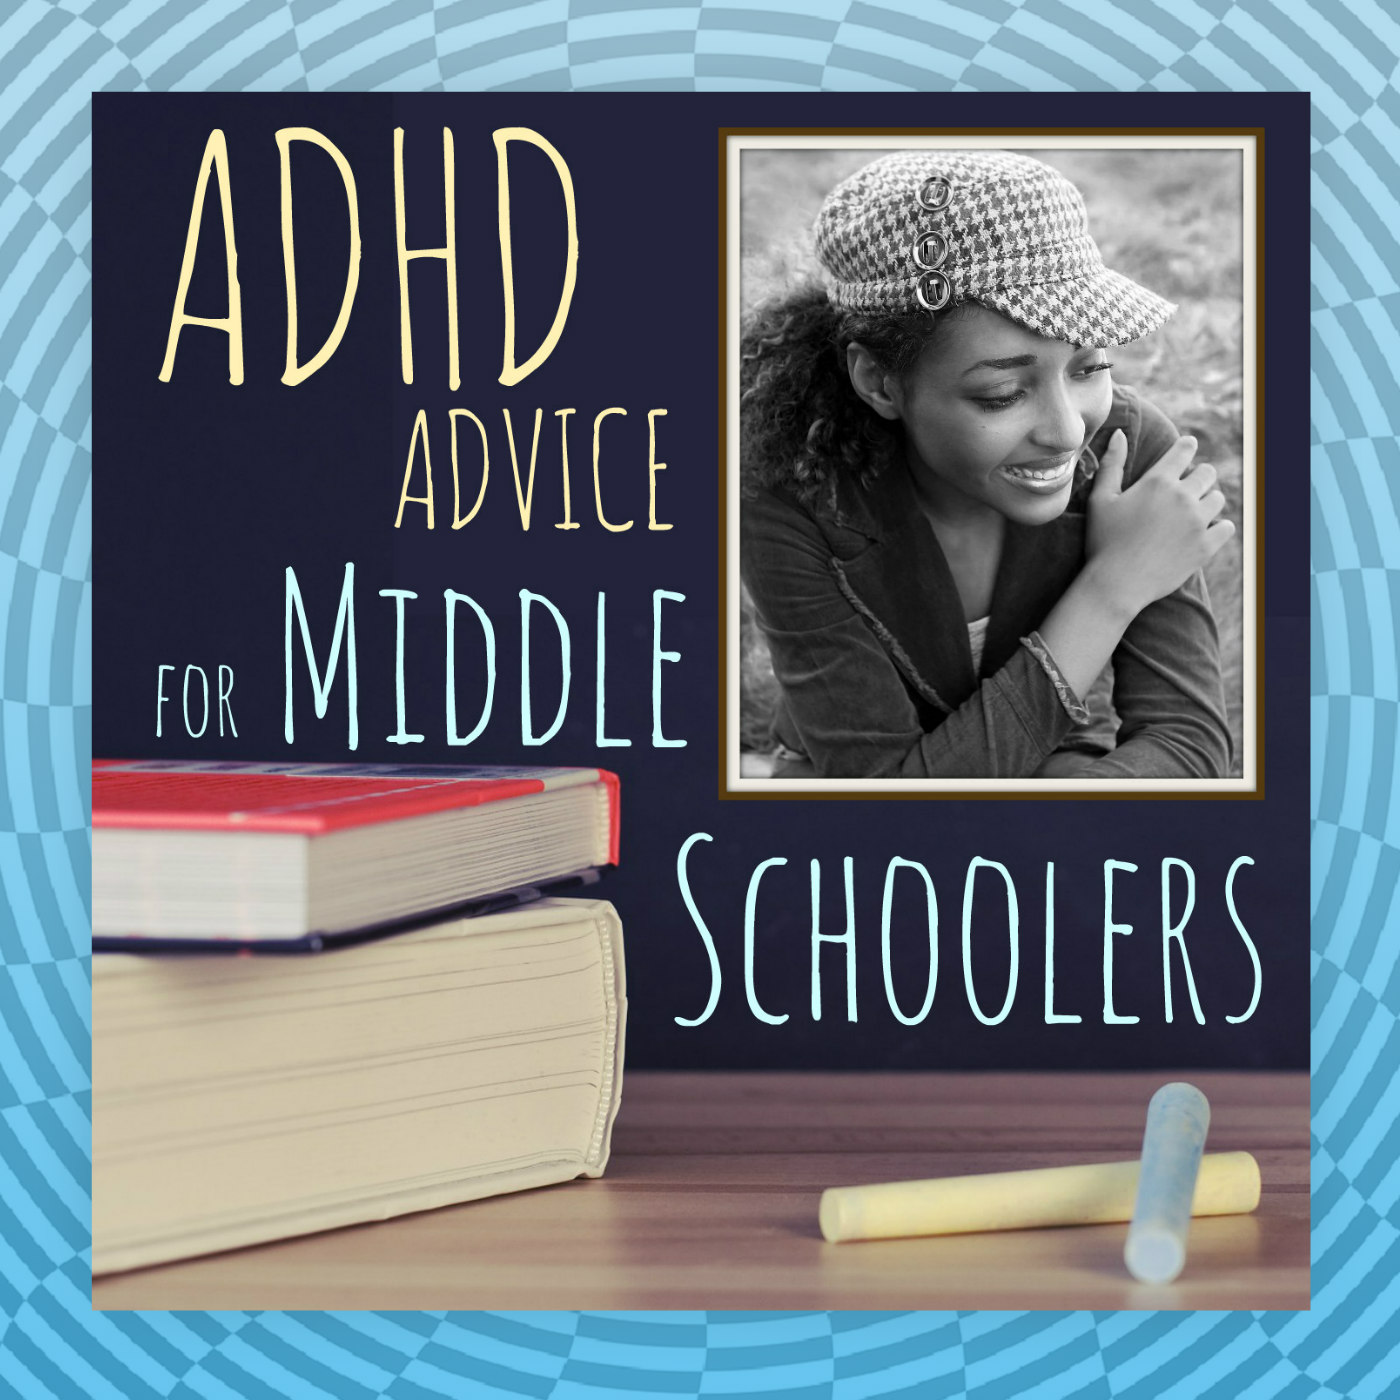 S3 Mini 29: ADHD Advice for Middle Schoolers